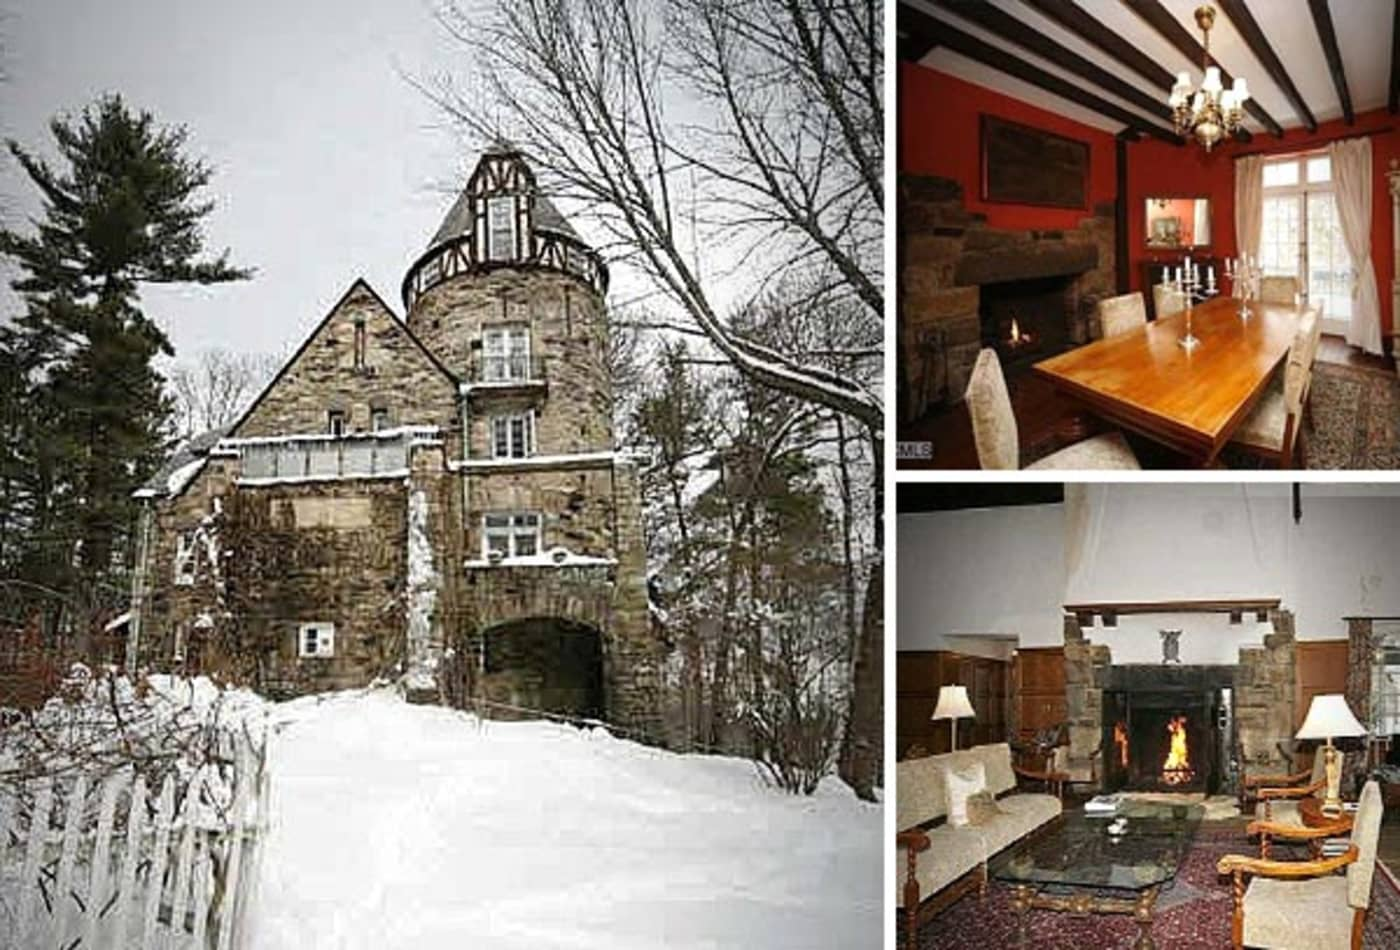 Castle-Stamford-Scary-Homes-For-Sale-SS.jpg